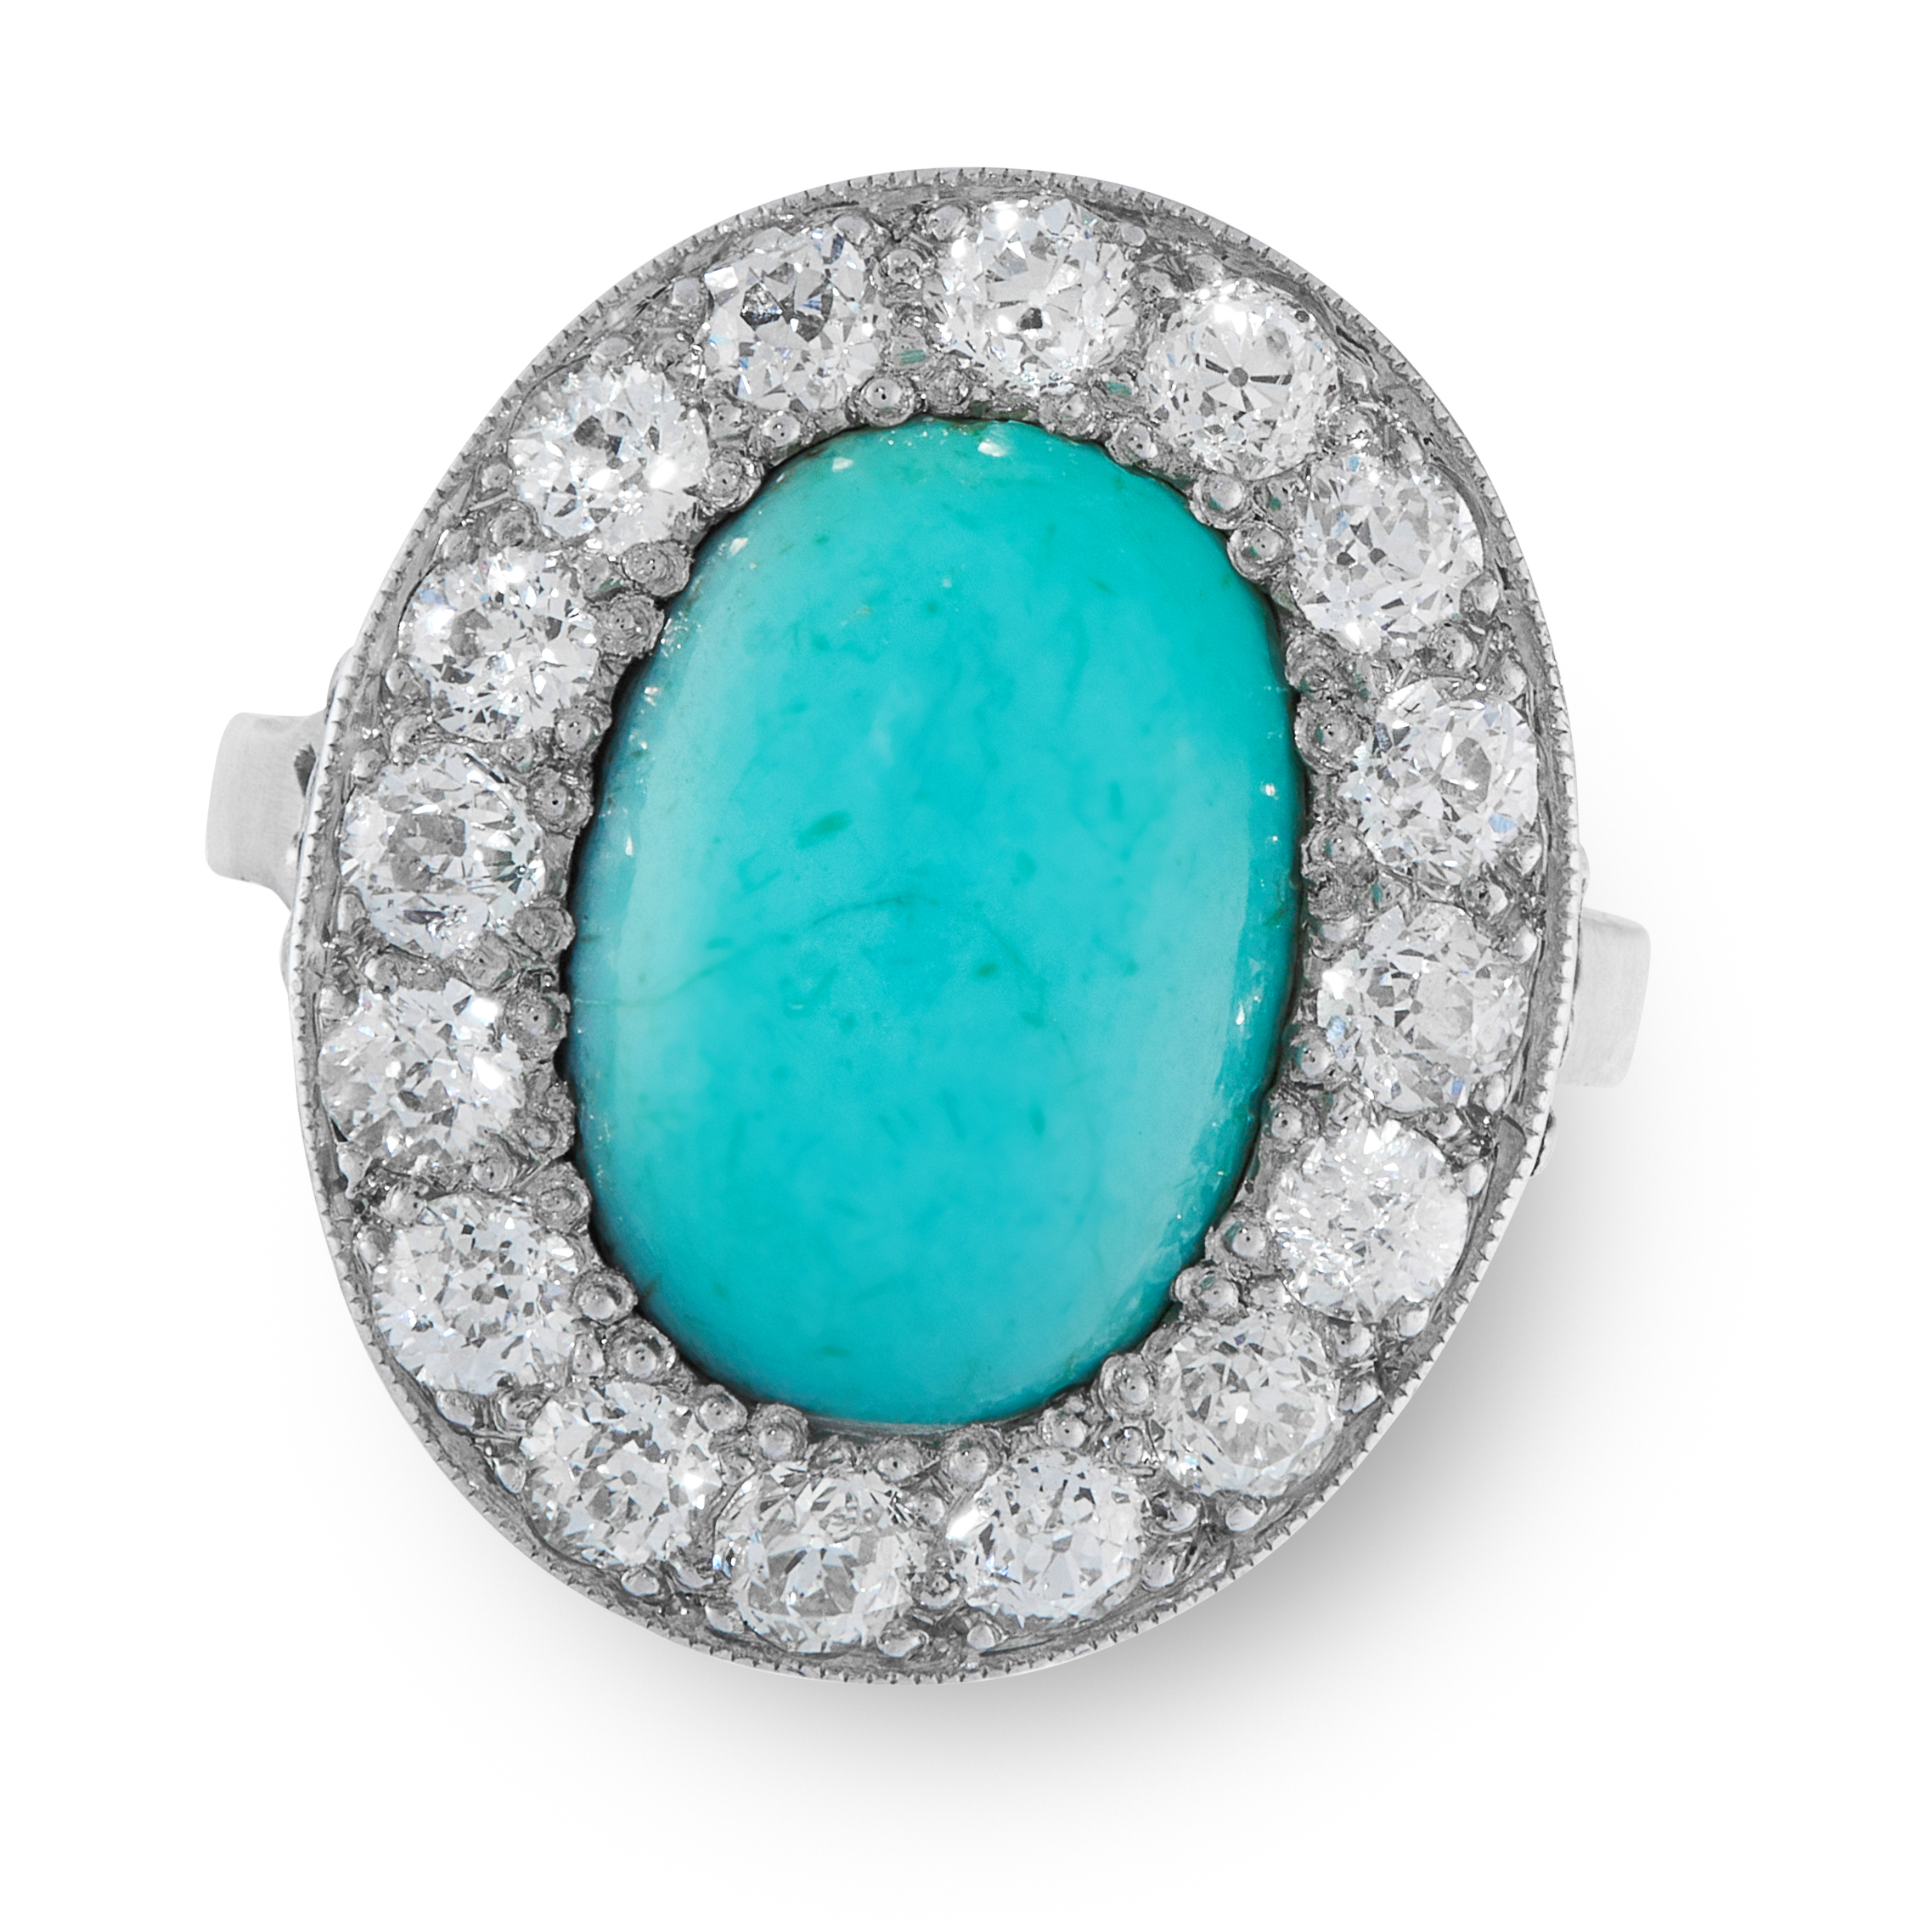 A TURQUOISE AND DIAMOND CLUSTER RING, EARLY 20TH CENTURY set with an oval turquoise cabochon